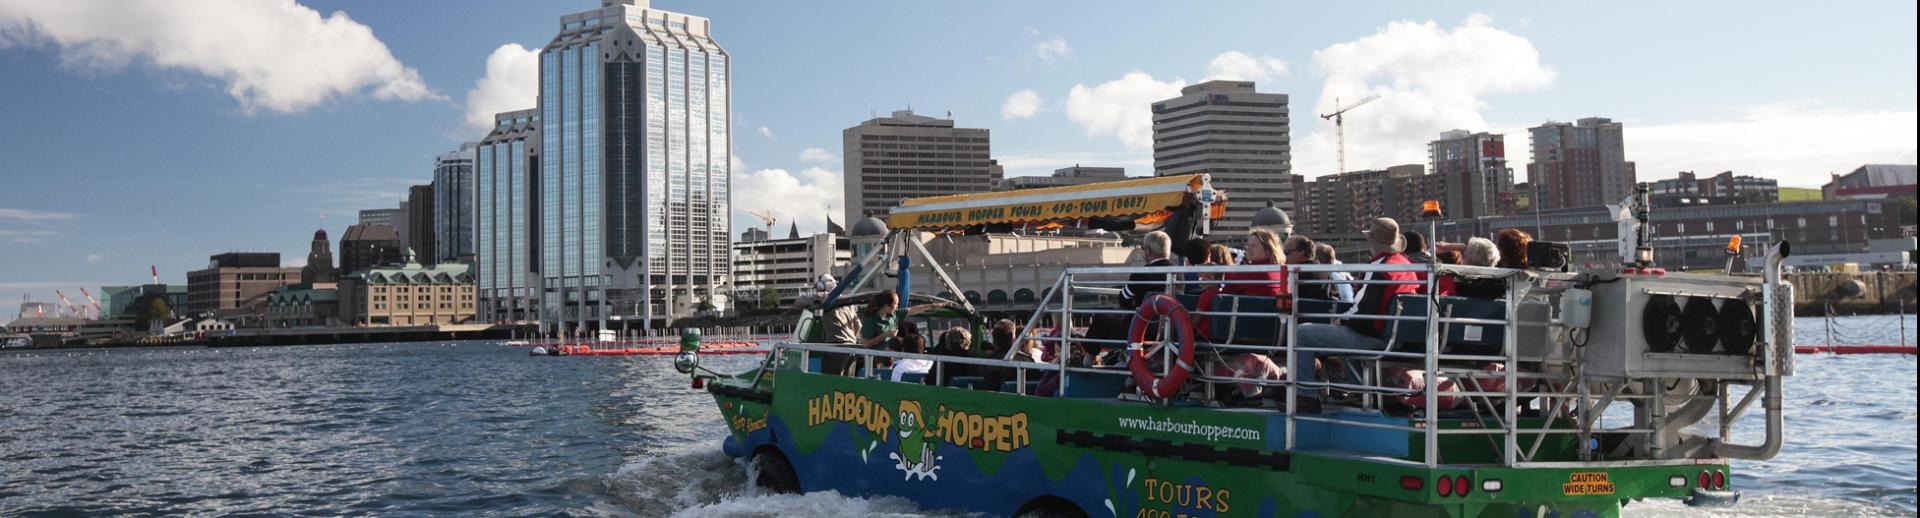 Harbour Hoppper Tour, Halifax Waterfront